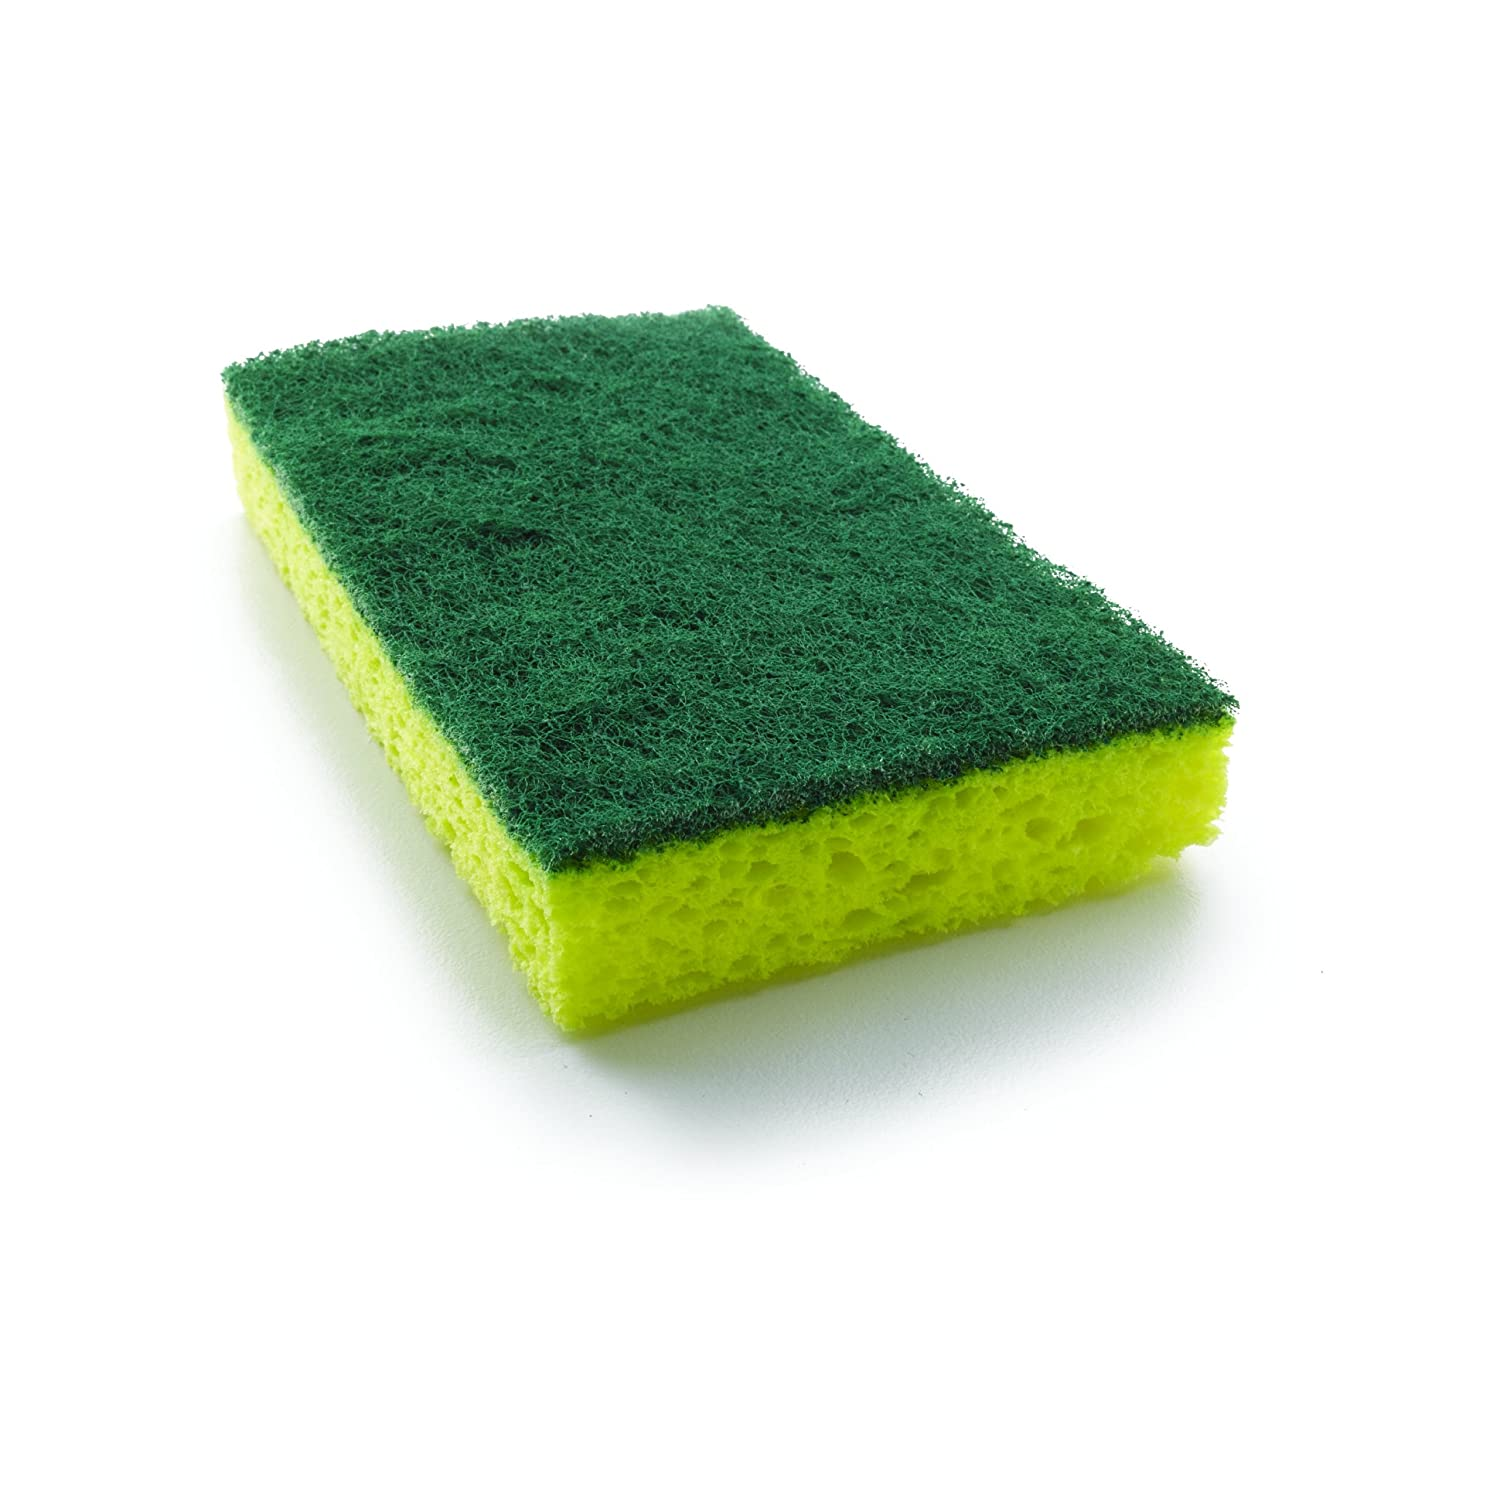 Lpt use a scrub sponge to open tricky bottles jars with manly ease lifeprotips - Seven different uses of the kitchen sponge ...